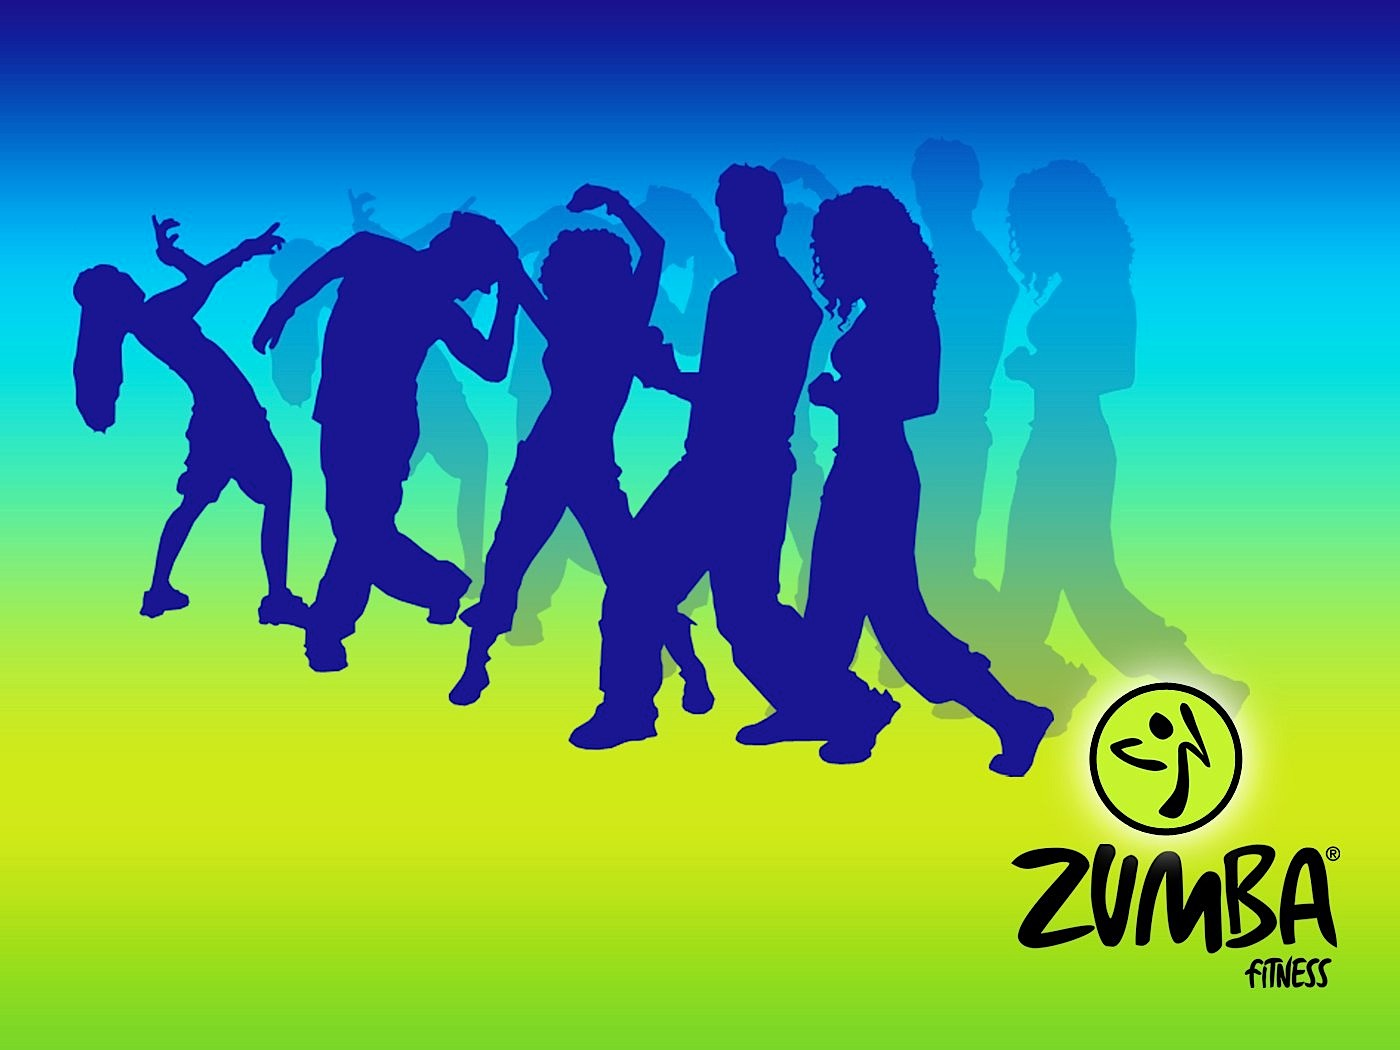 Applause clipart group. Zumba class free on